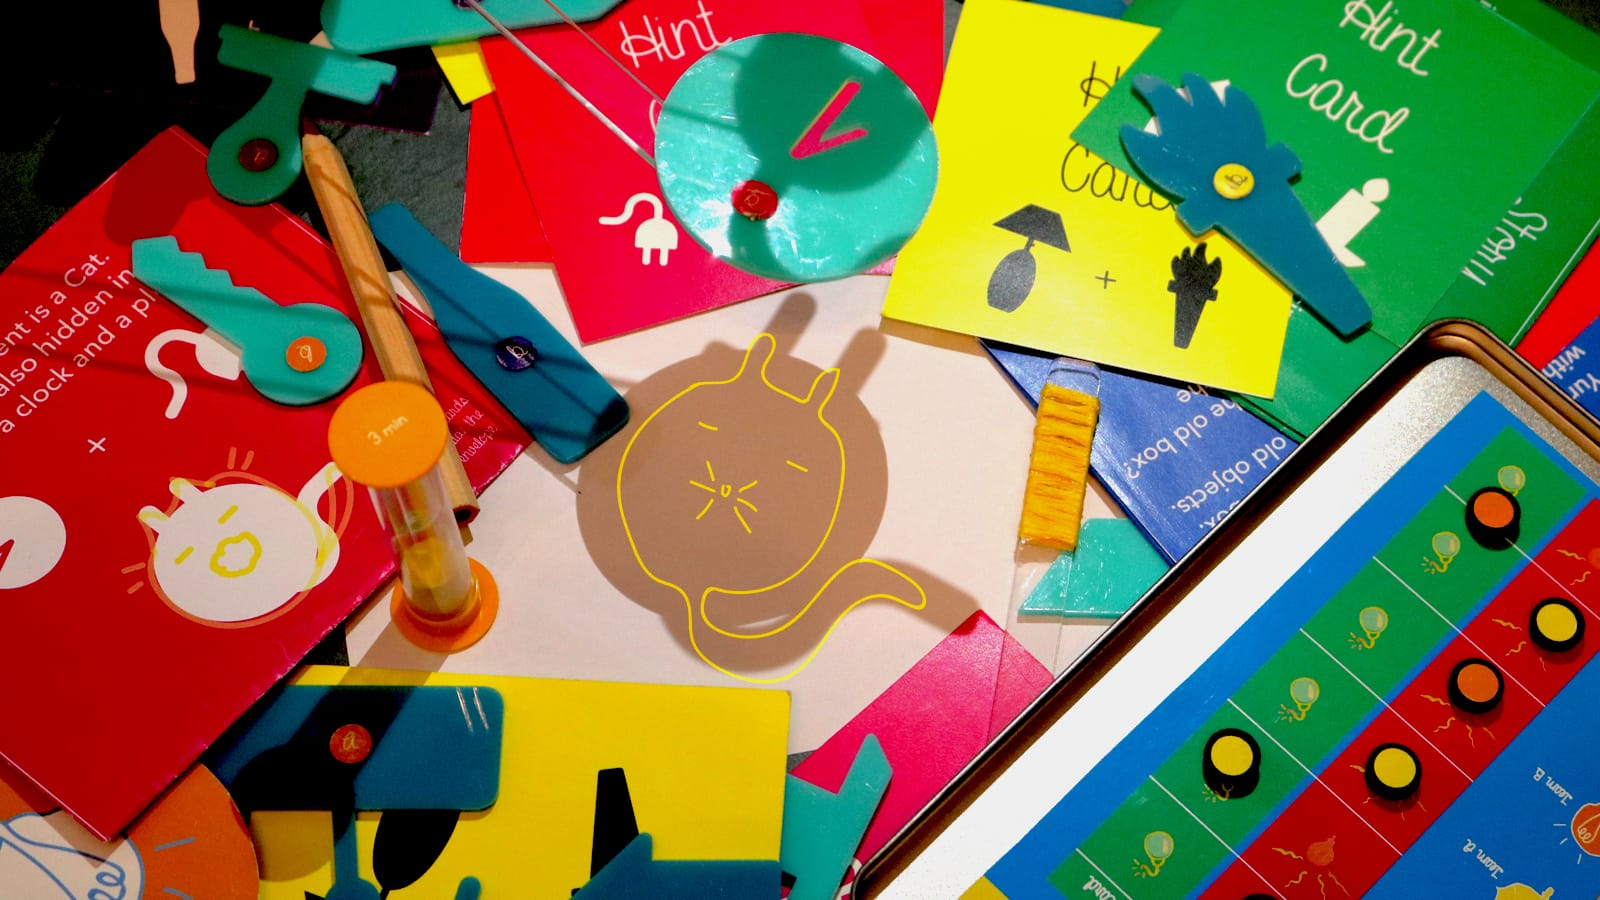 Bulby light and shadow ideation game lets children unleash their creative genius